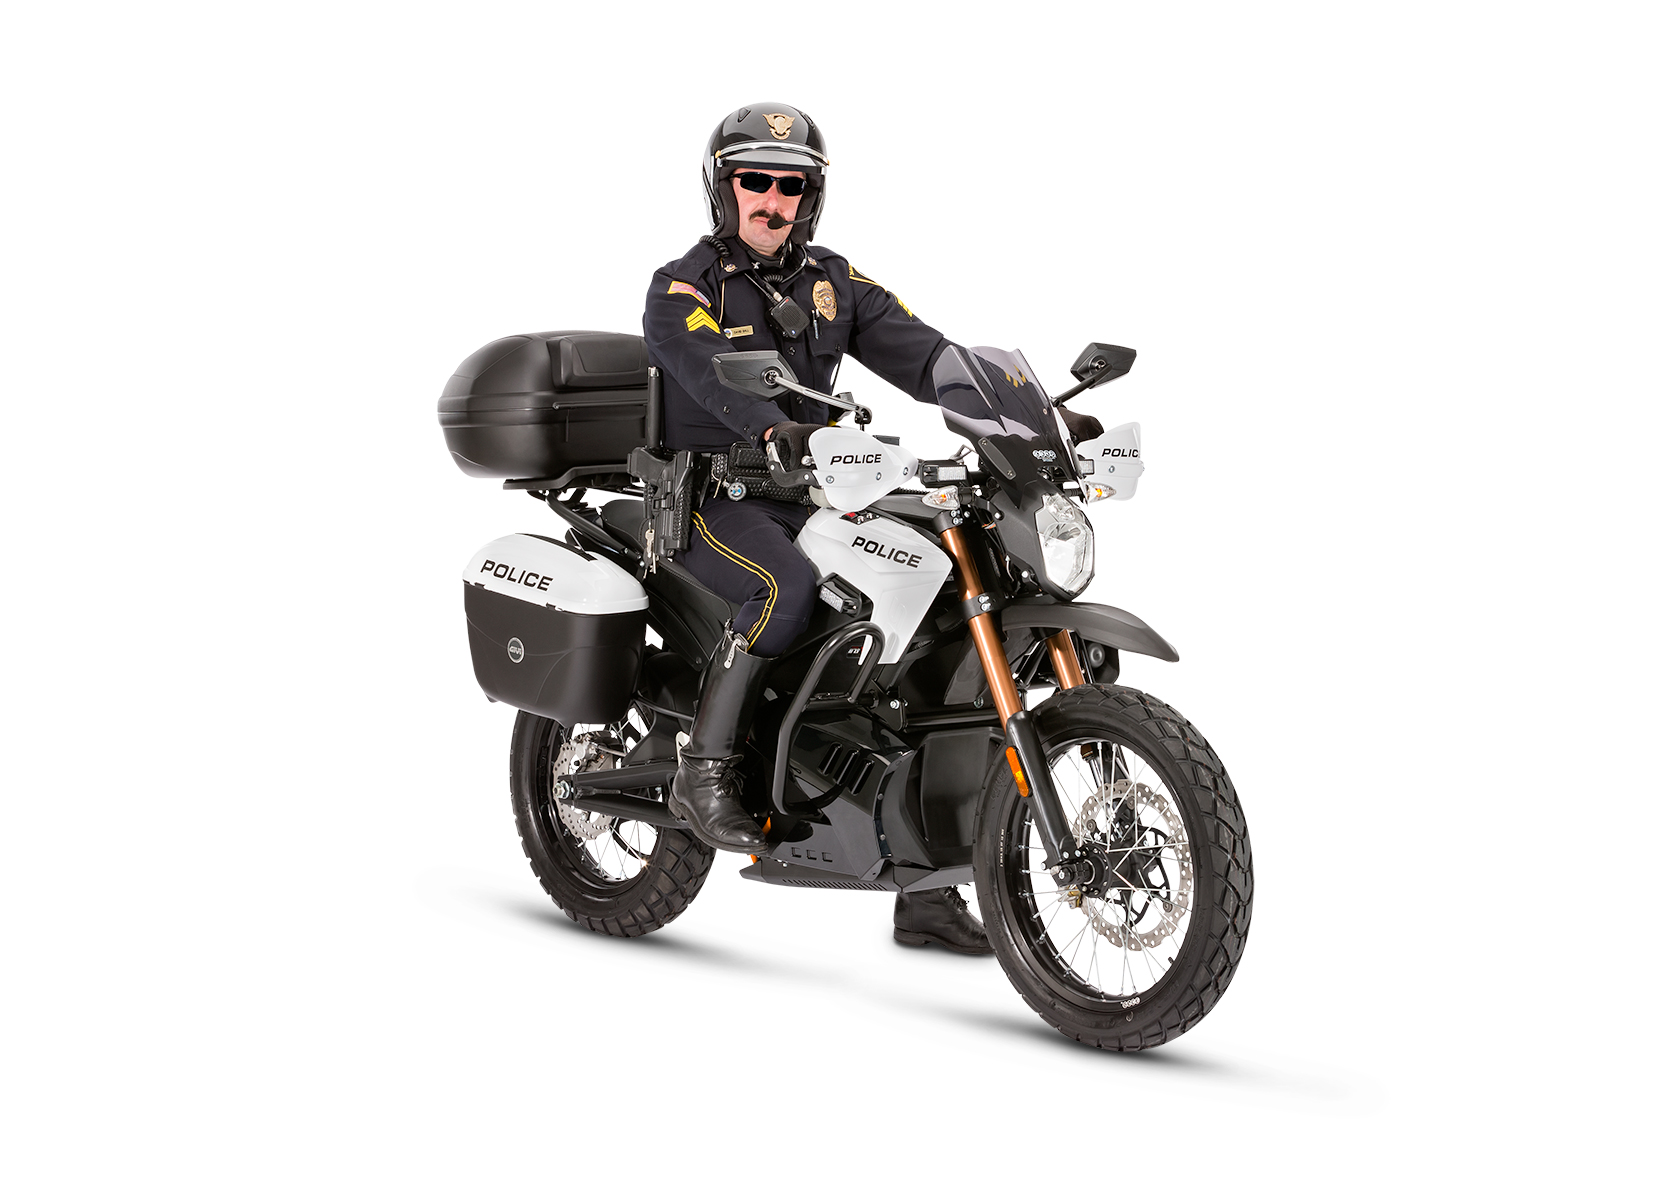 2013 Zero Police Electric Motorcycle: Right angle, White Background